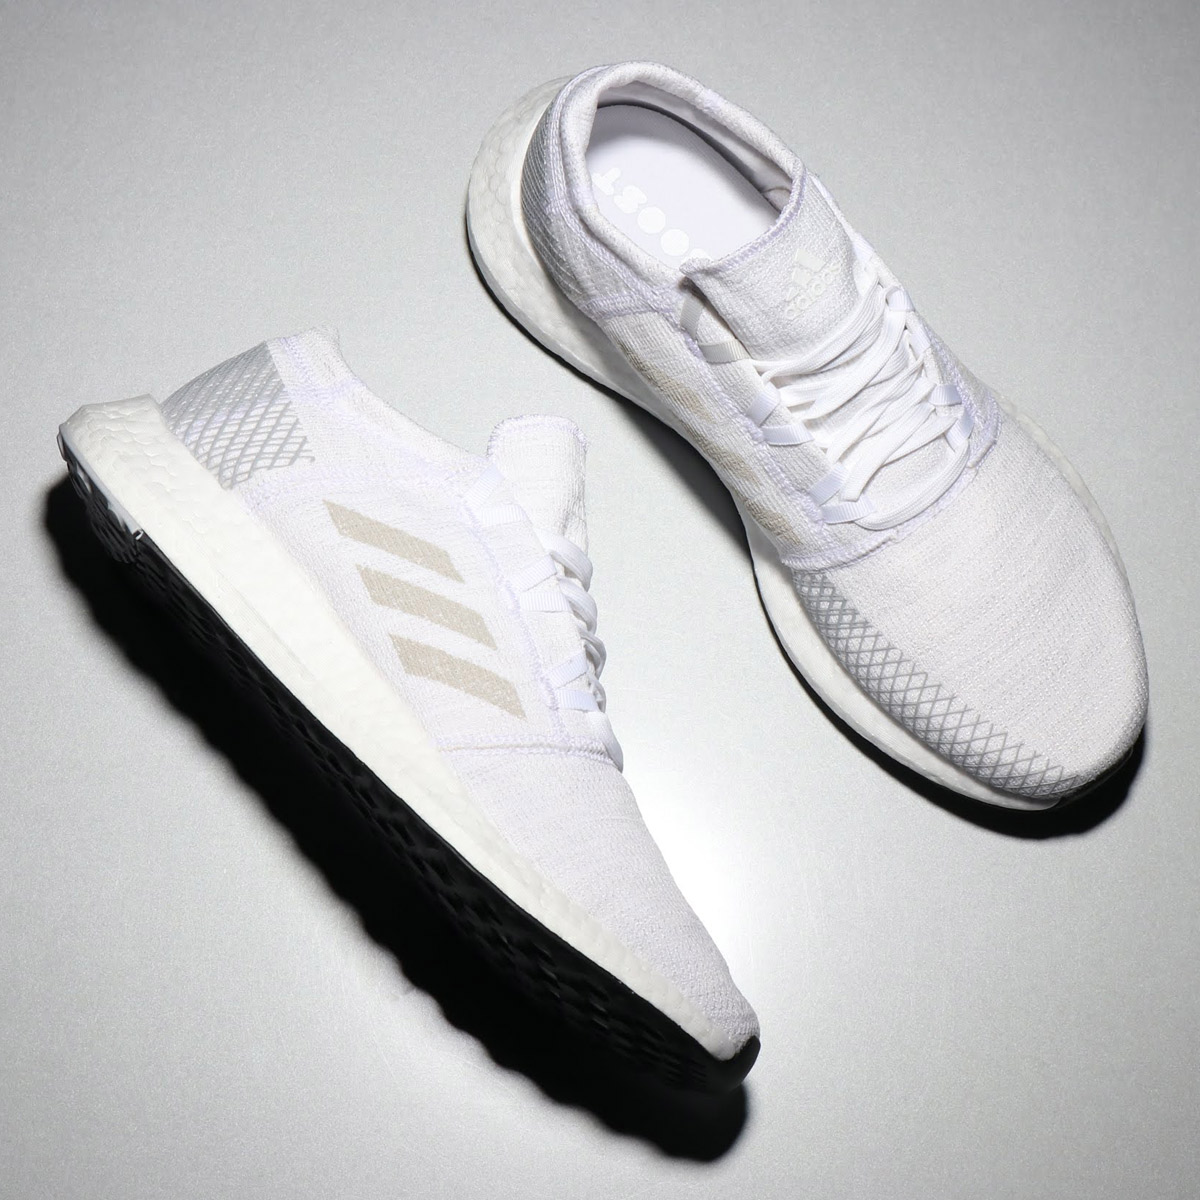 wholesale dealer f7d86 69b78 adidas PureBOOST GO (Adidas pure boost GO) RUNNING WHITE GREY 18FW-I ...